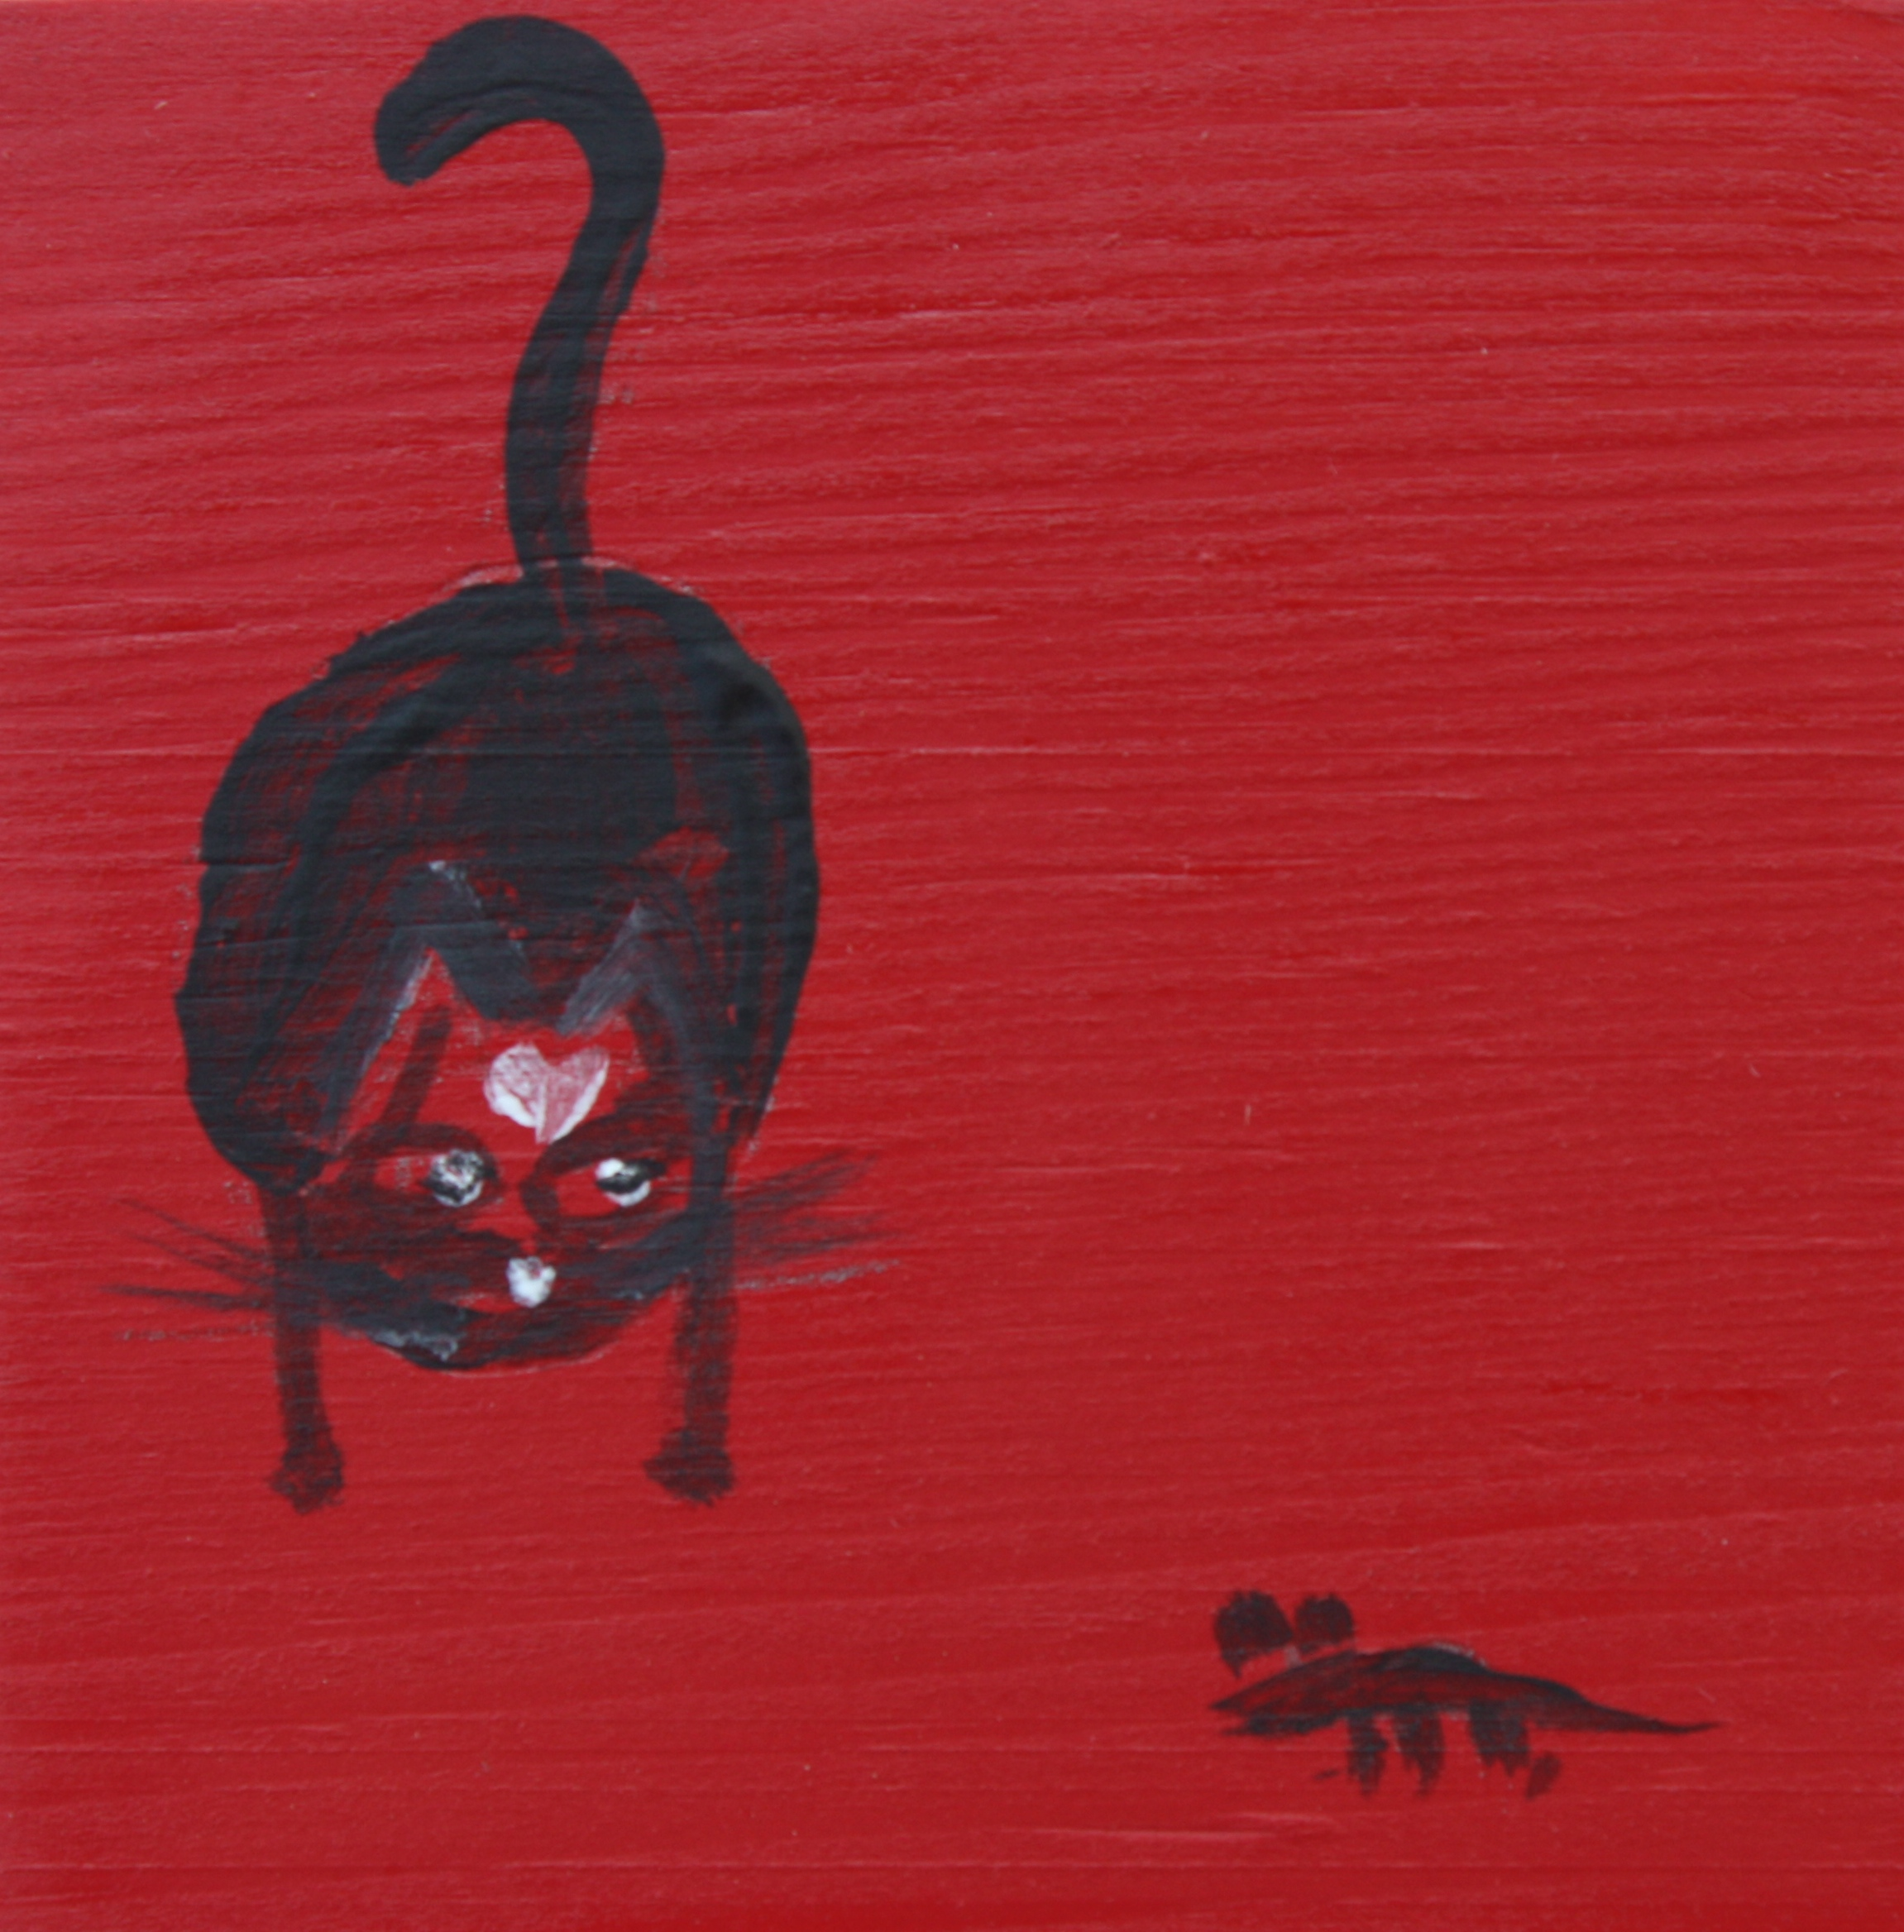 140713 - 2 cat and Mouse